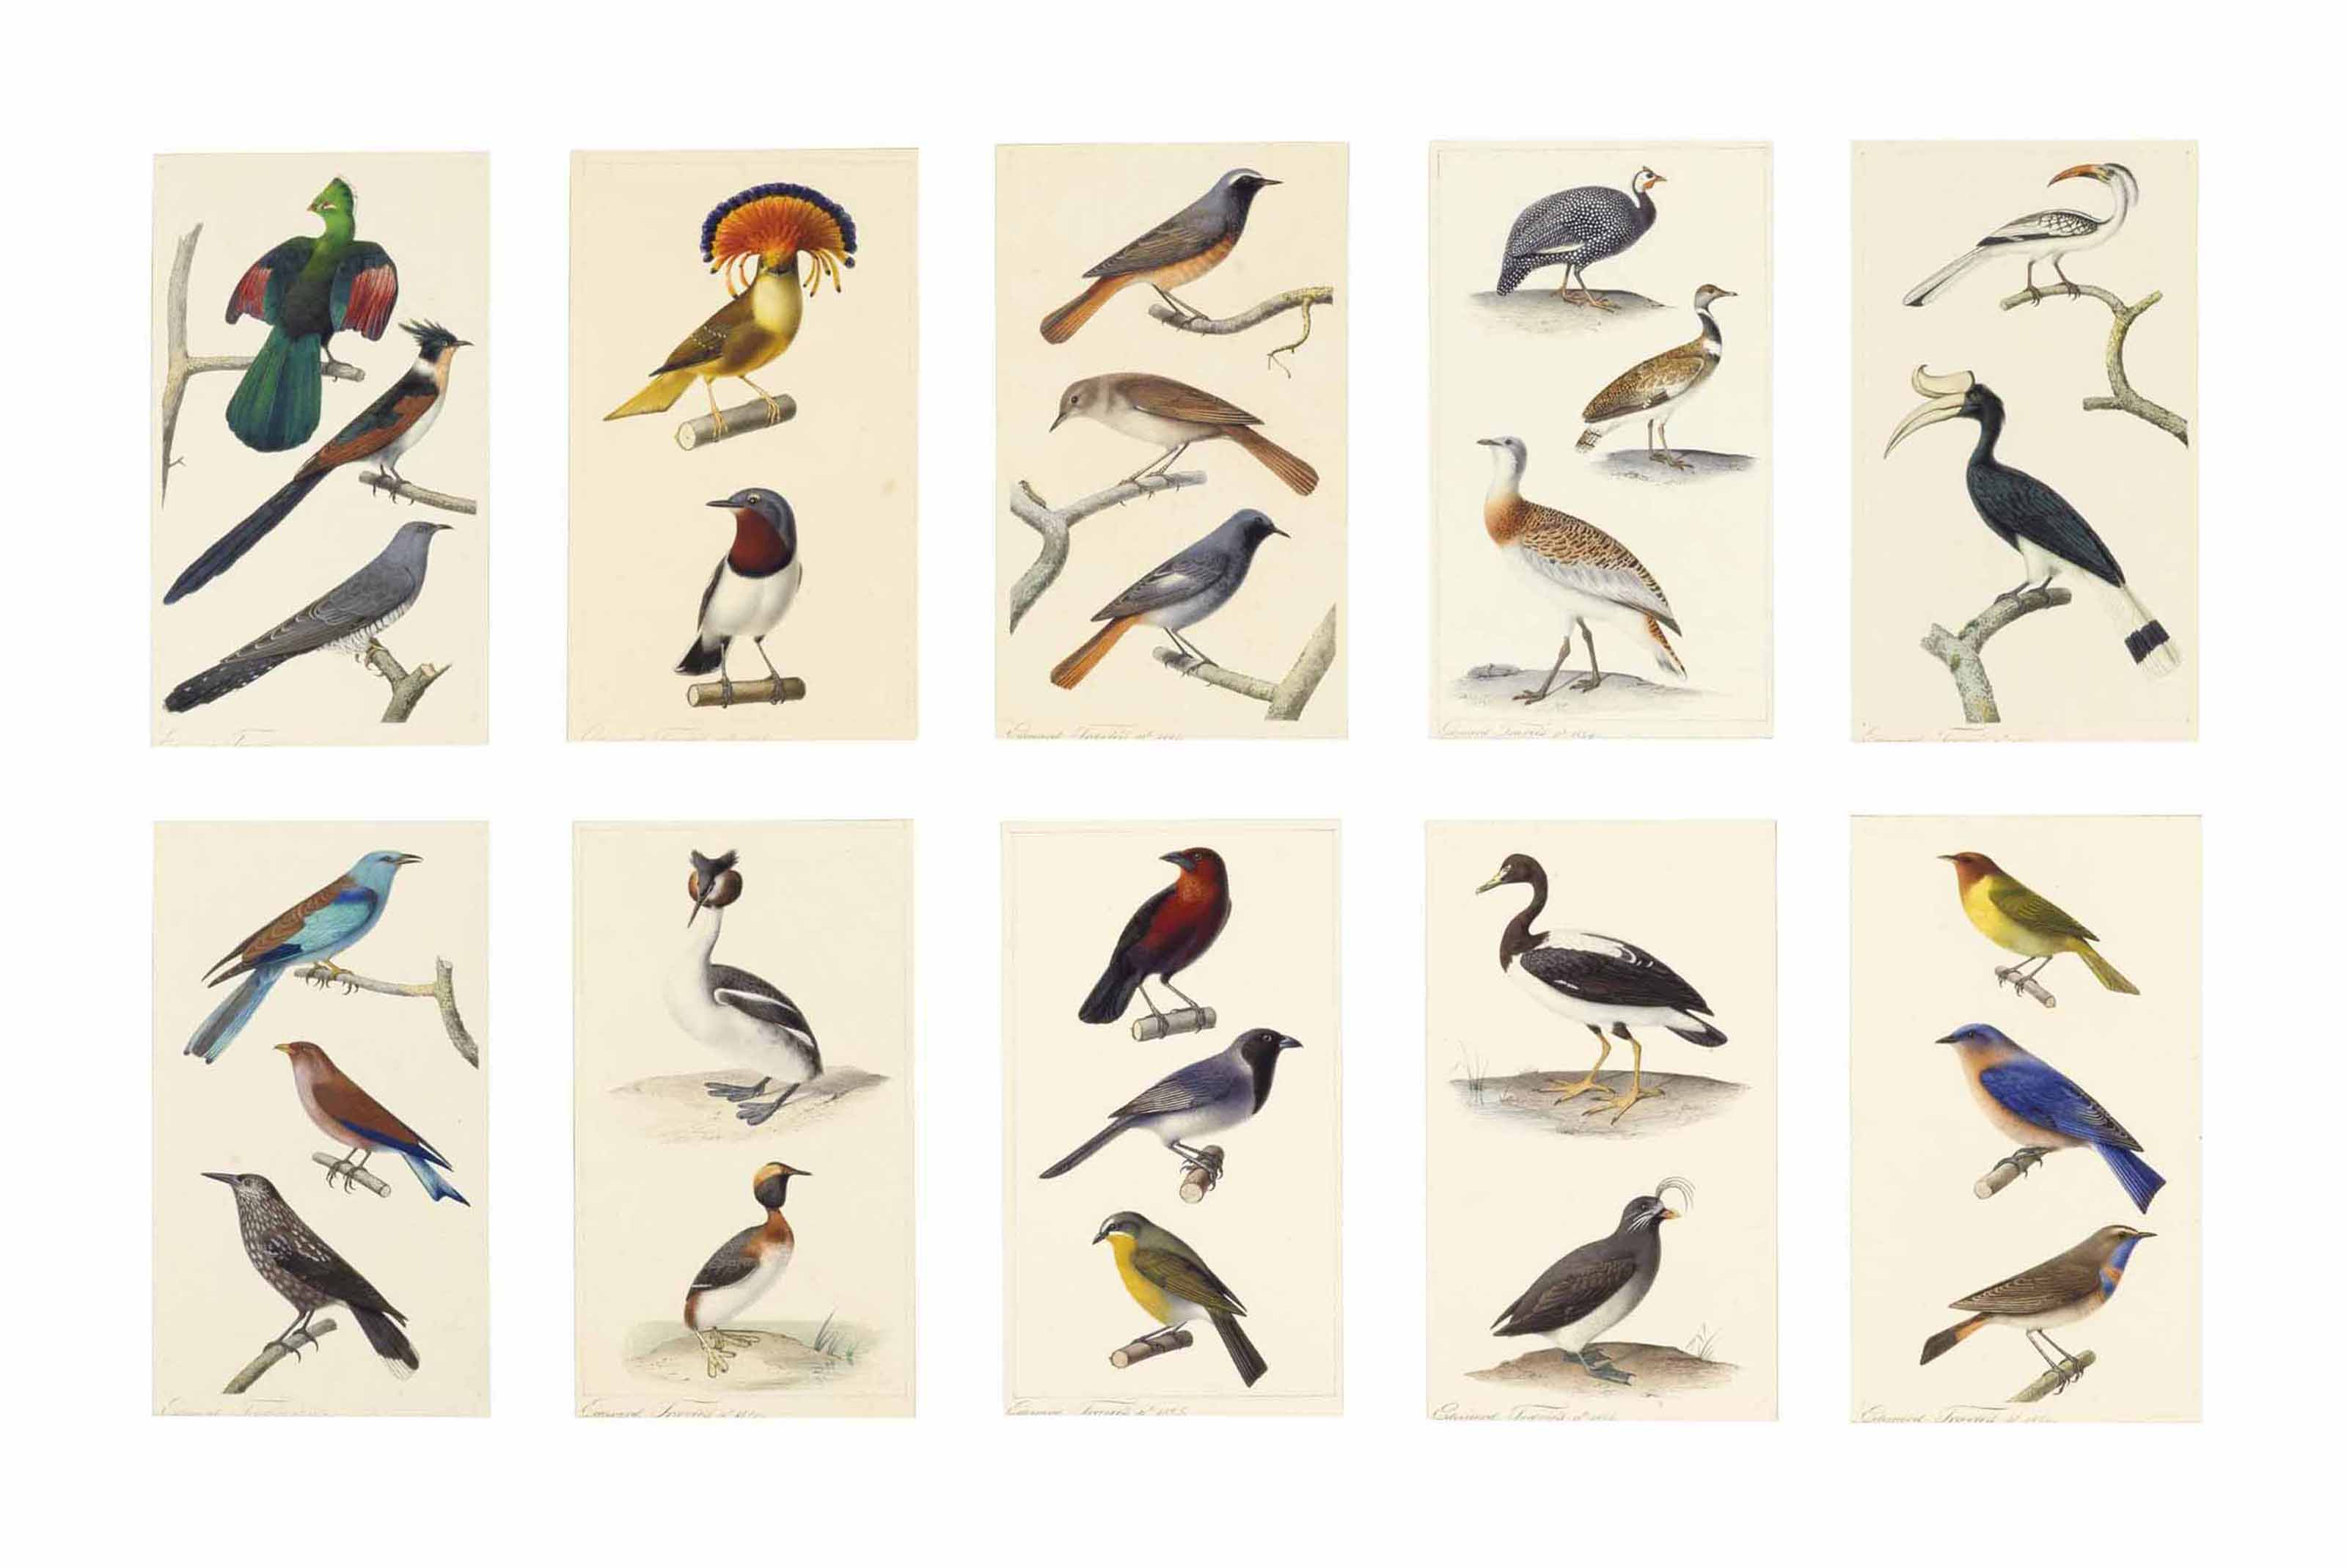 Studies of birds: Livingstone's tauraco, Red-winged crested cuckoo, and Common cuckoo; Royal flycatcher and Scarlet-spectacled wattle-eye; Common redstart, Nightingale, and Black redstart; Helmeted guinea fowl, Little bustard, and Great bustard; Red-billed hornbill and Rhinoceros hornbill; European roller, Broad-billed roller, and Nutcracker; Great crested grebe and Slavonian grebe; Crimson-backed tanager, Blacked-faced cuckoo-shrike, and Sulphur-breasted bush shrike; Magpie goose and Crested auklet; and Red-headed bunting, Eastern bluebird, and Bluethroat